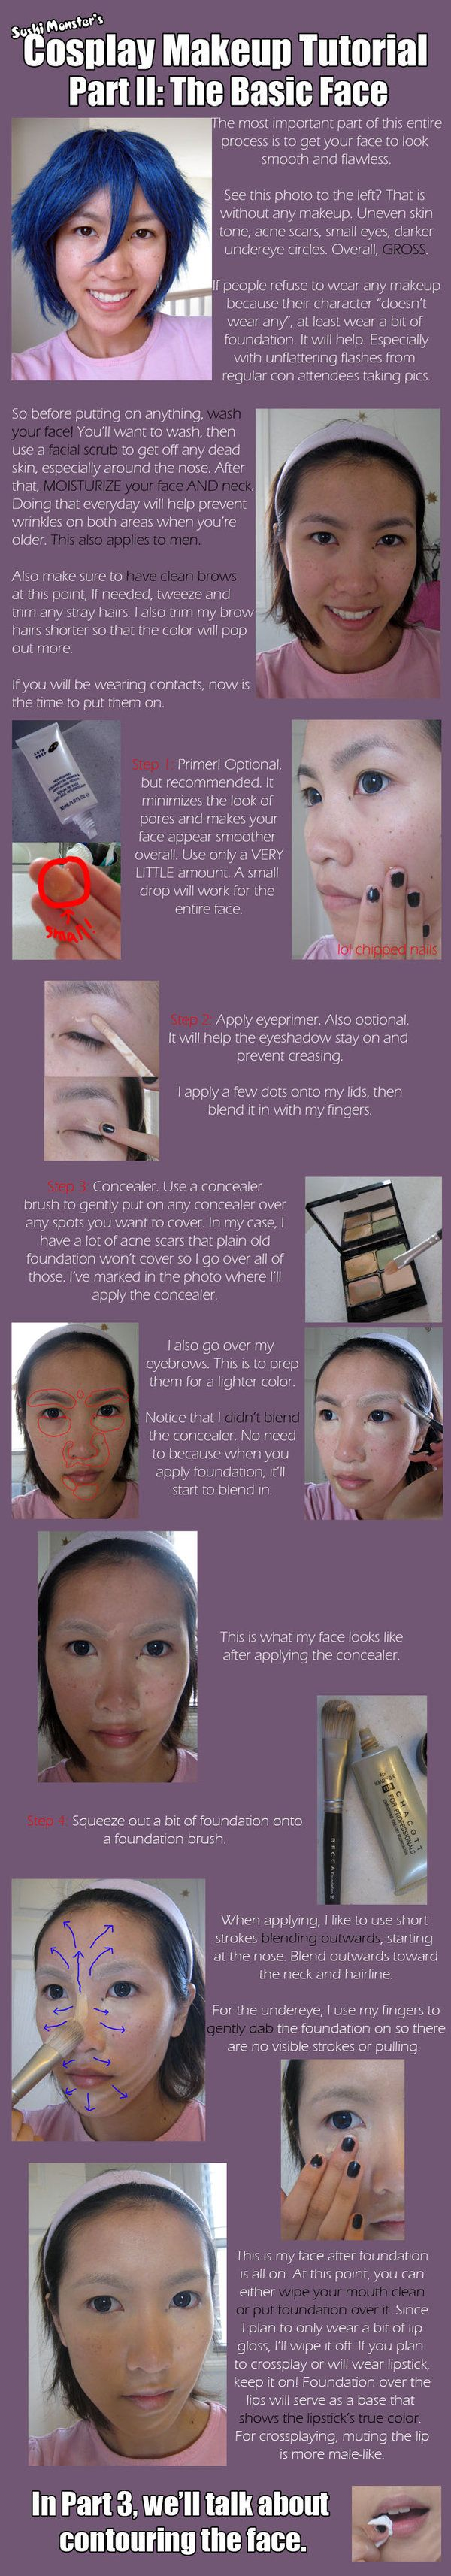 Cosplay Makeup Tutorial Part II by ~the-sushi-monster on deviantART